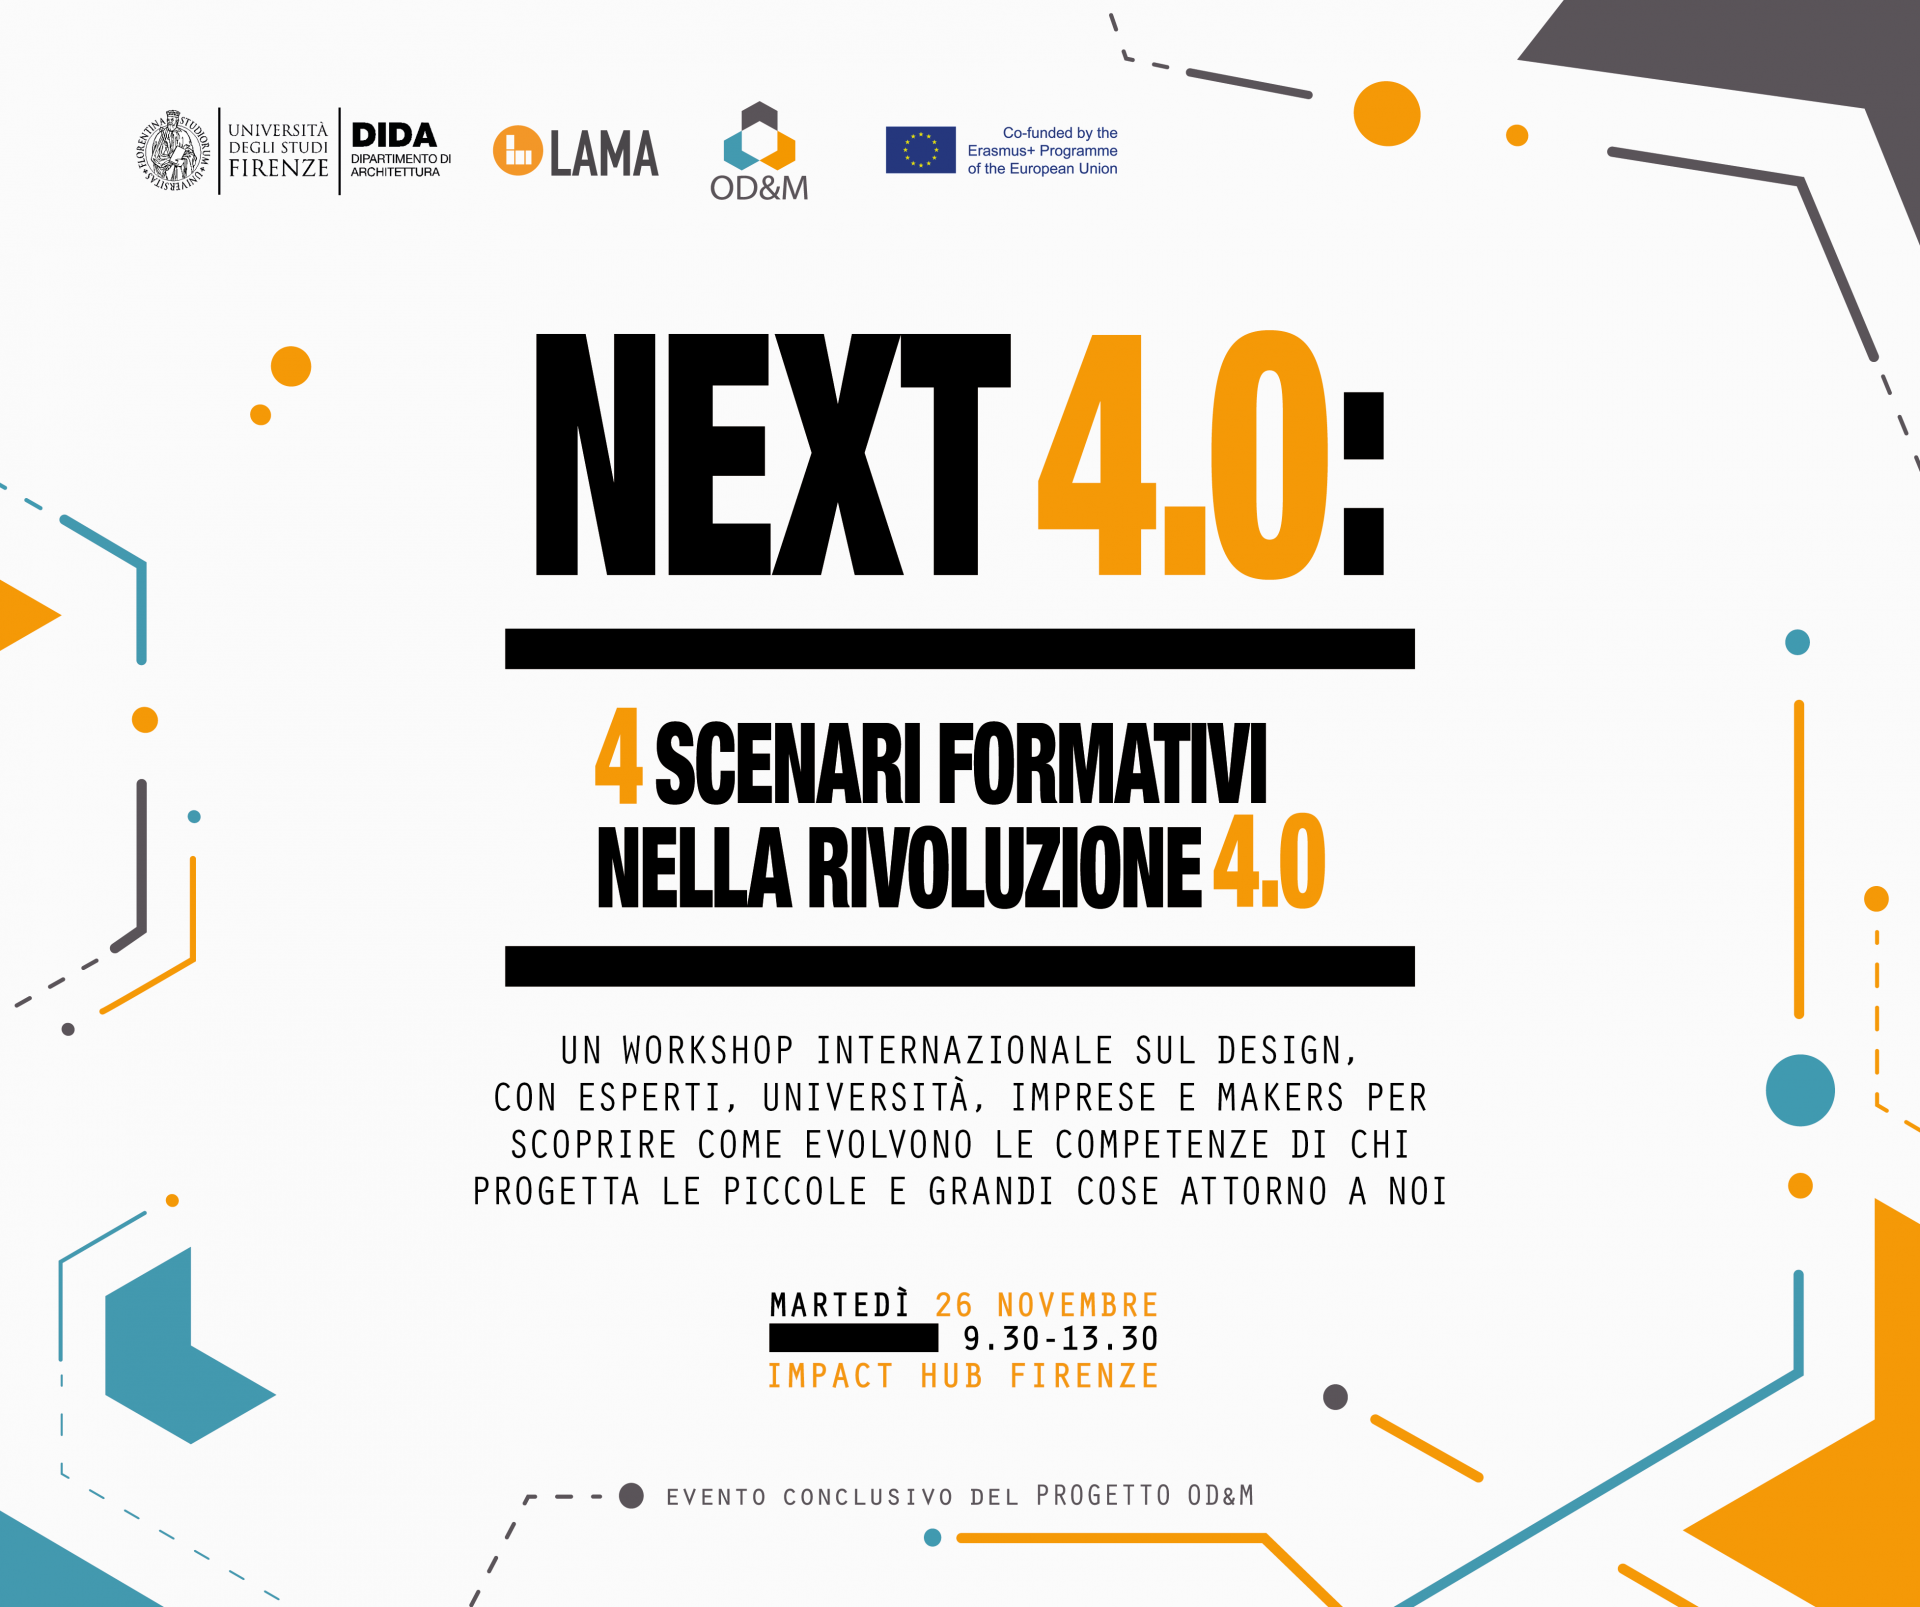 Next 4.0: Formative Scenarios for the 4.0 Revolution